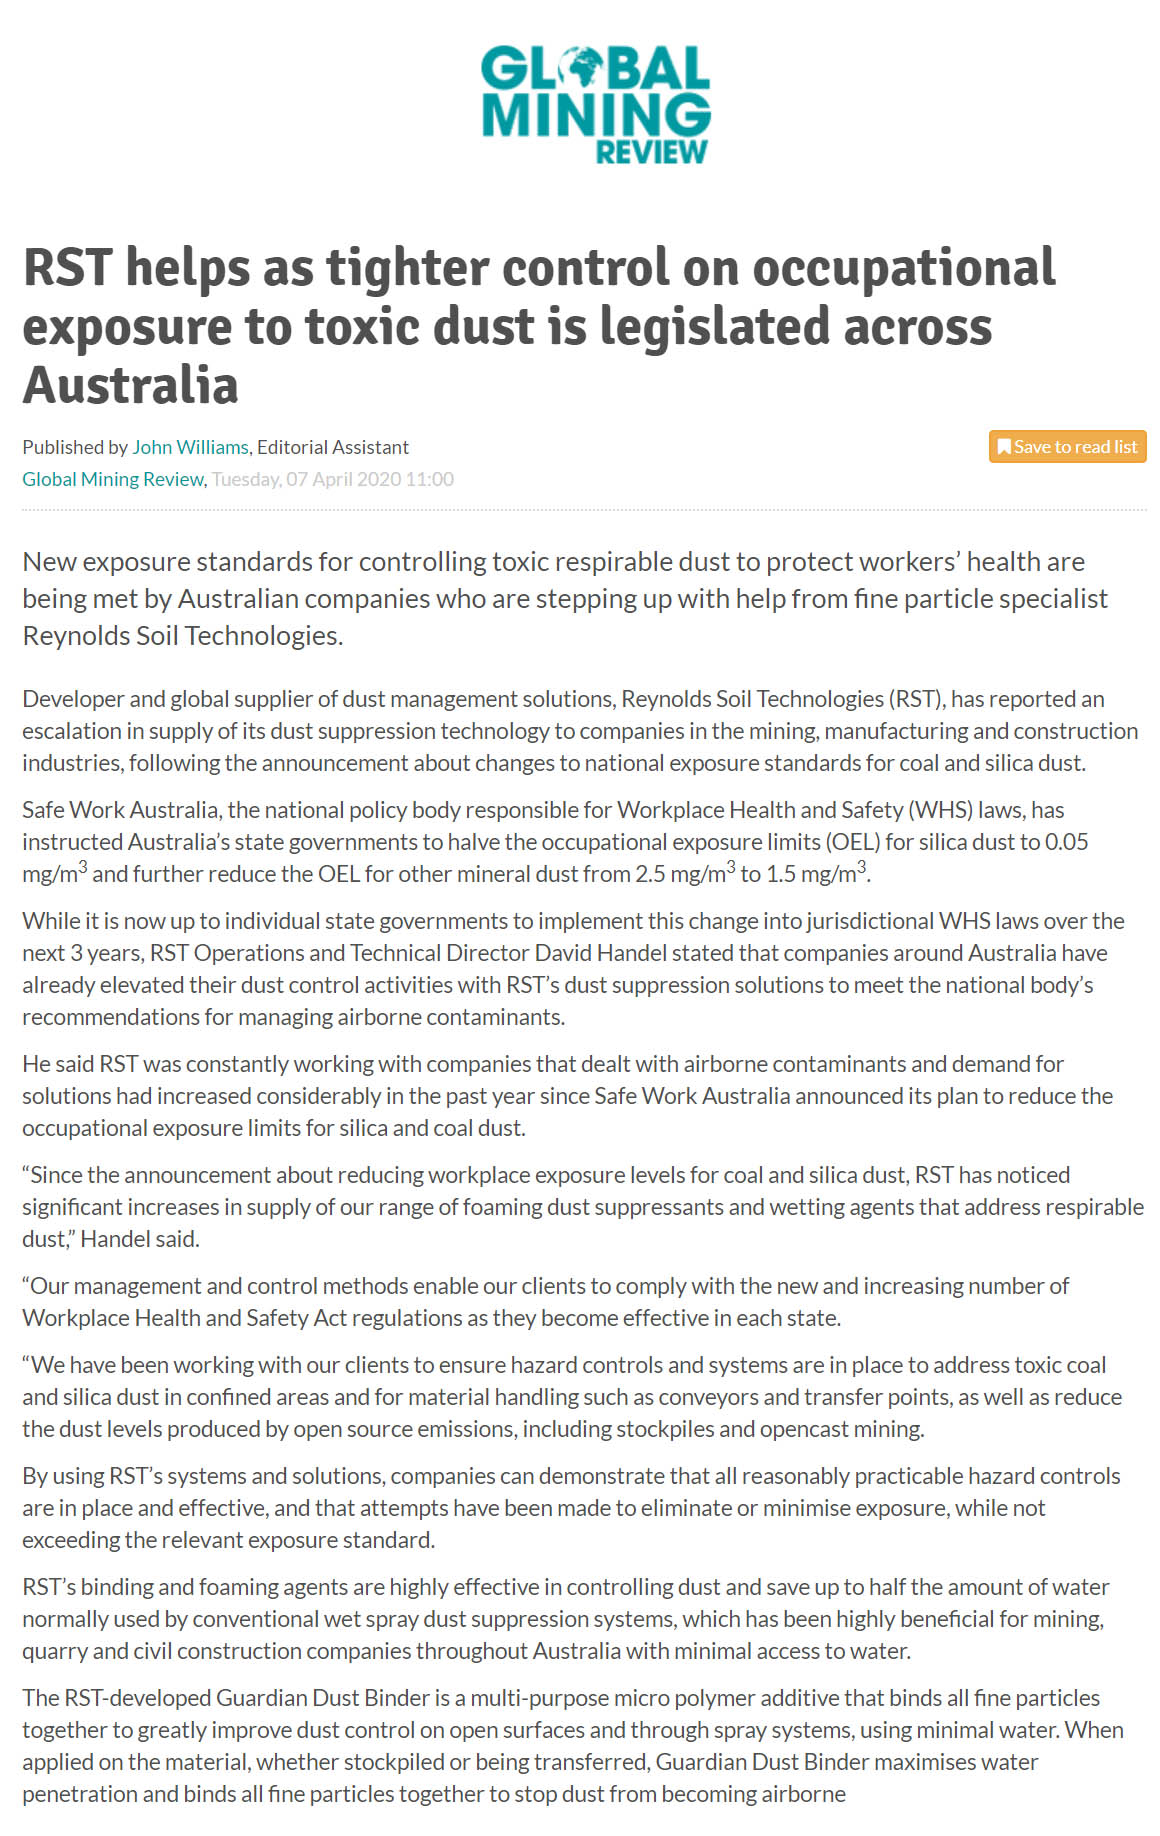 RST Helps as Tighter Control on Occupational Exposure to Toxic Dust is Legislated Across Australia (GMR)